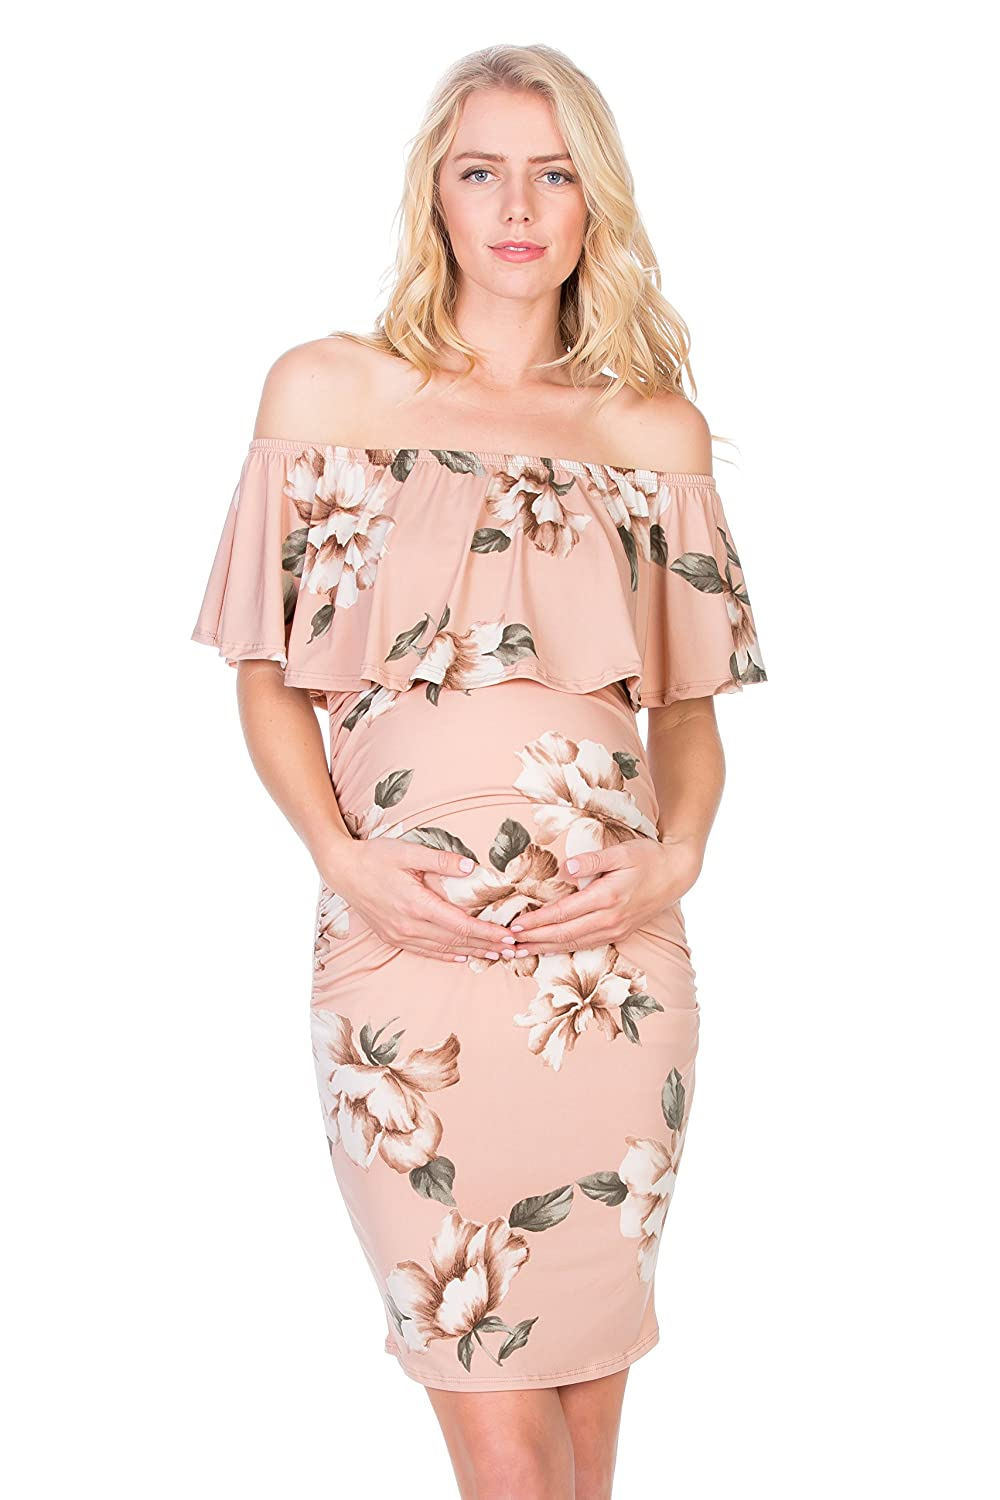 My Bump DRESS レディース B07FK9QSKN Small|ブラッシュ 花(Blush Flower) ブラッシュ 花(Blush Flower) Small